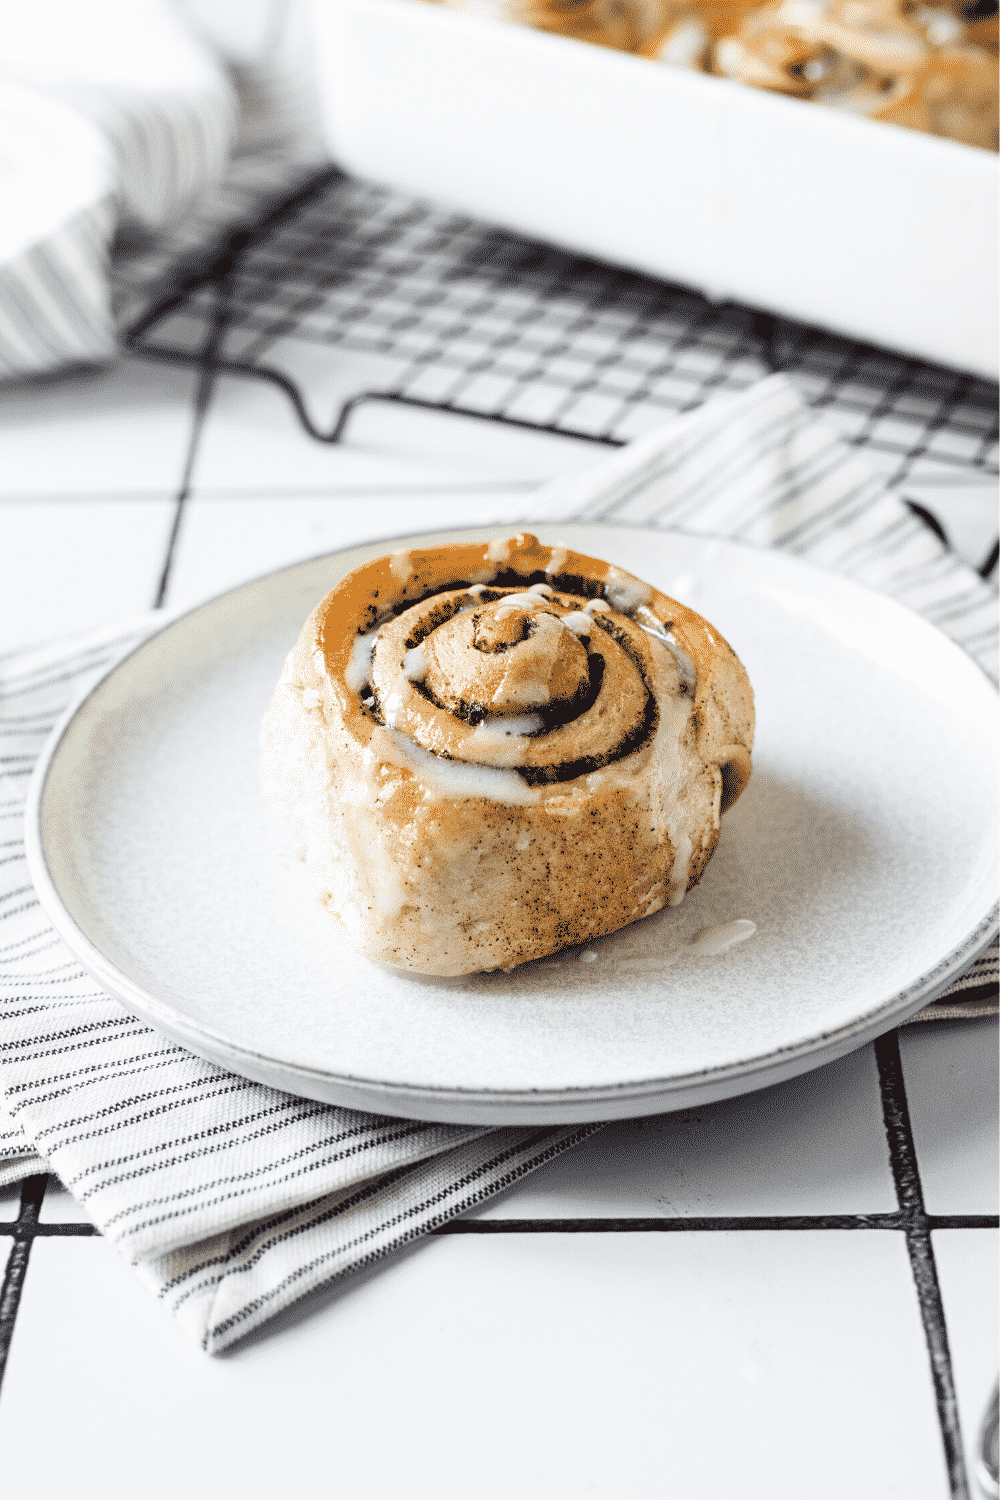 A white plate with a cinnamon roll on it. The plate is on a white stripped napkin on a white counter.